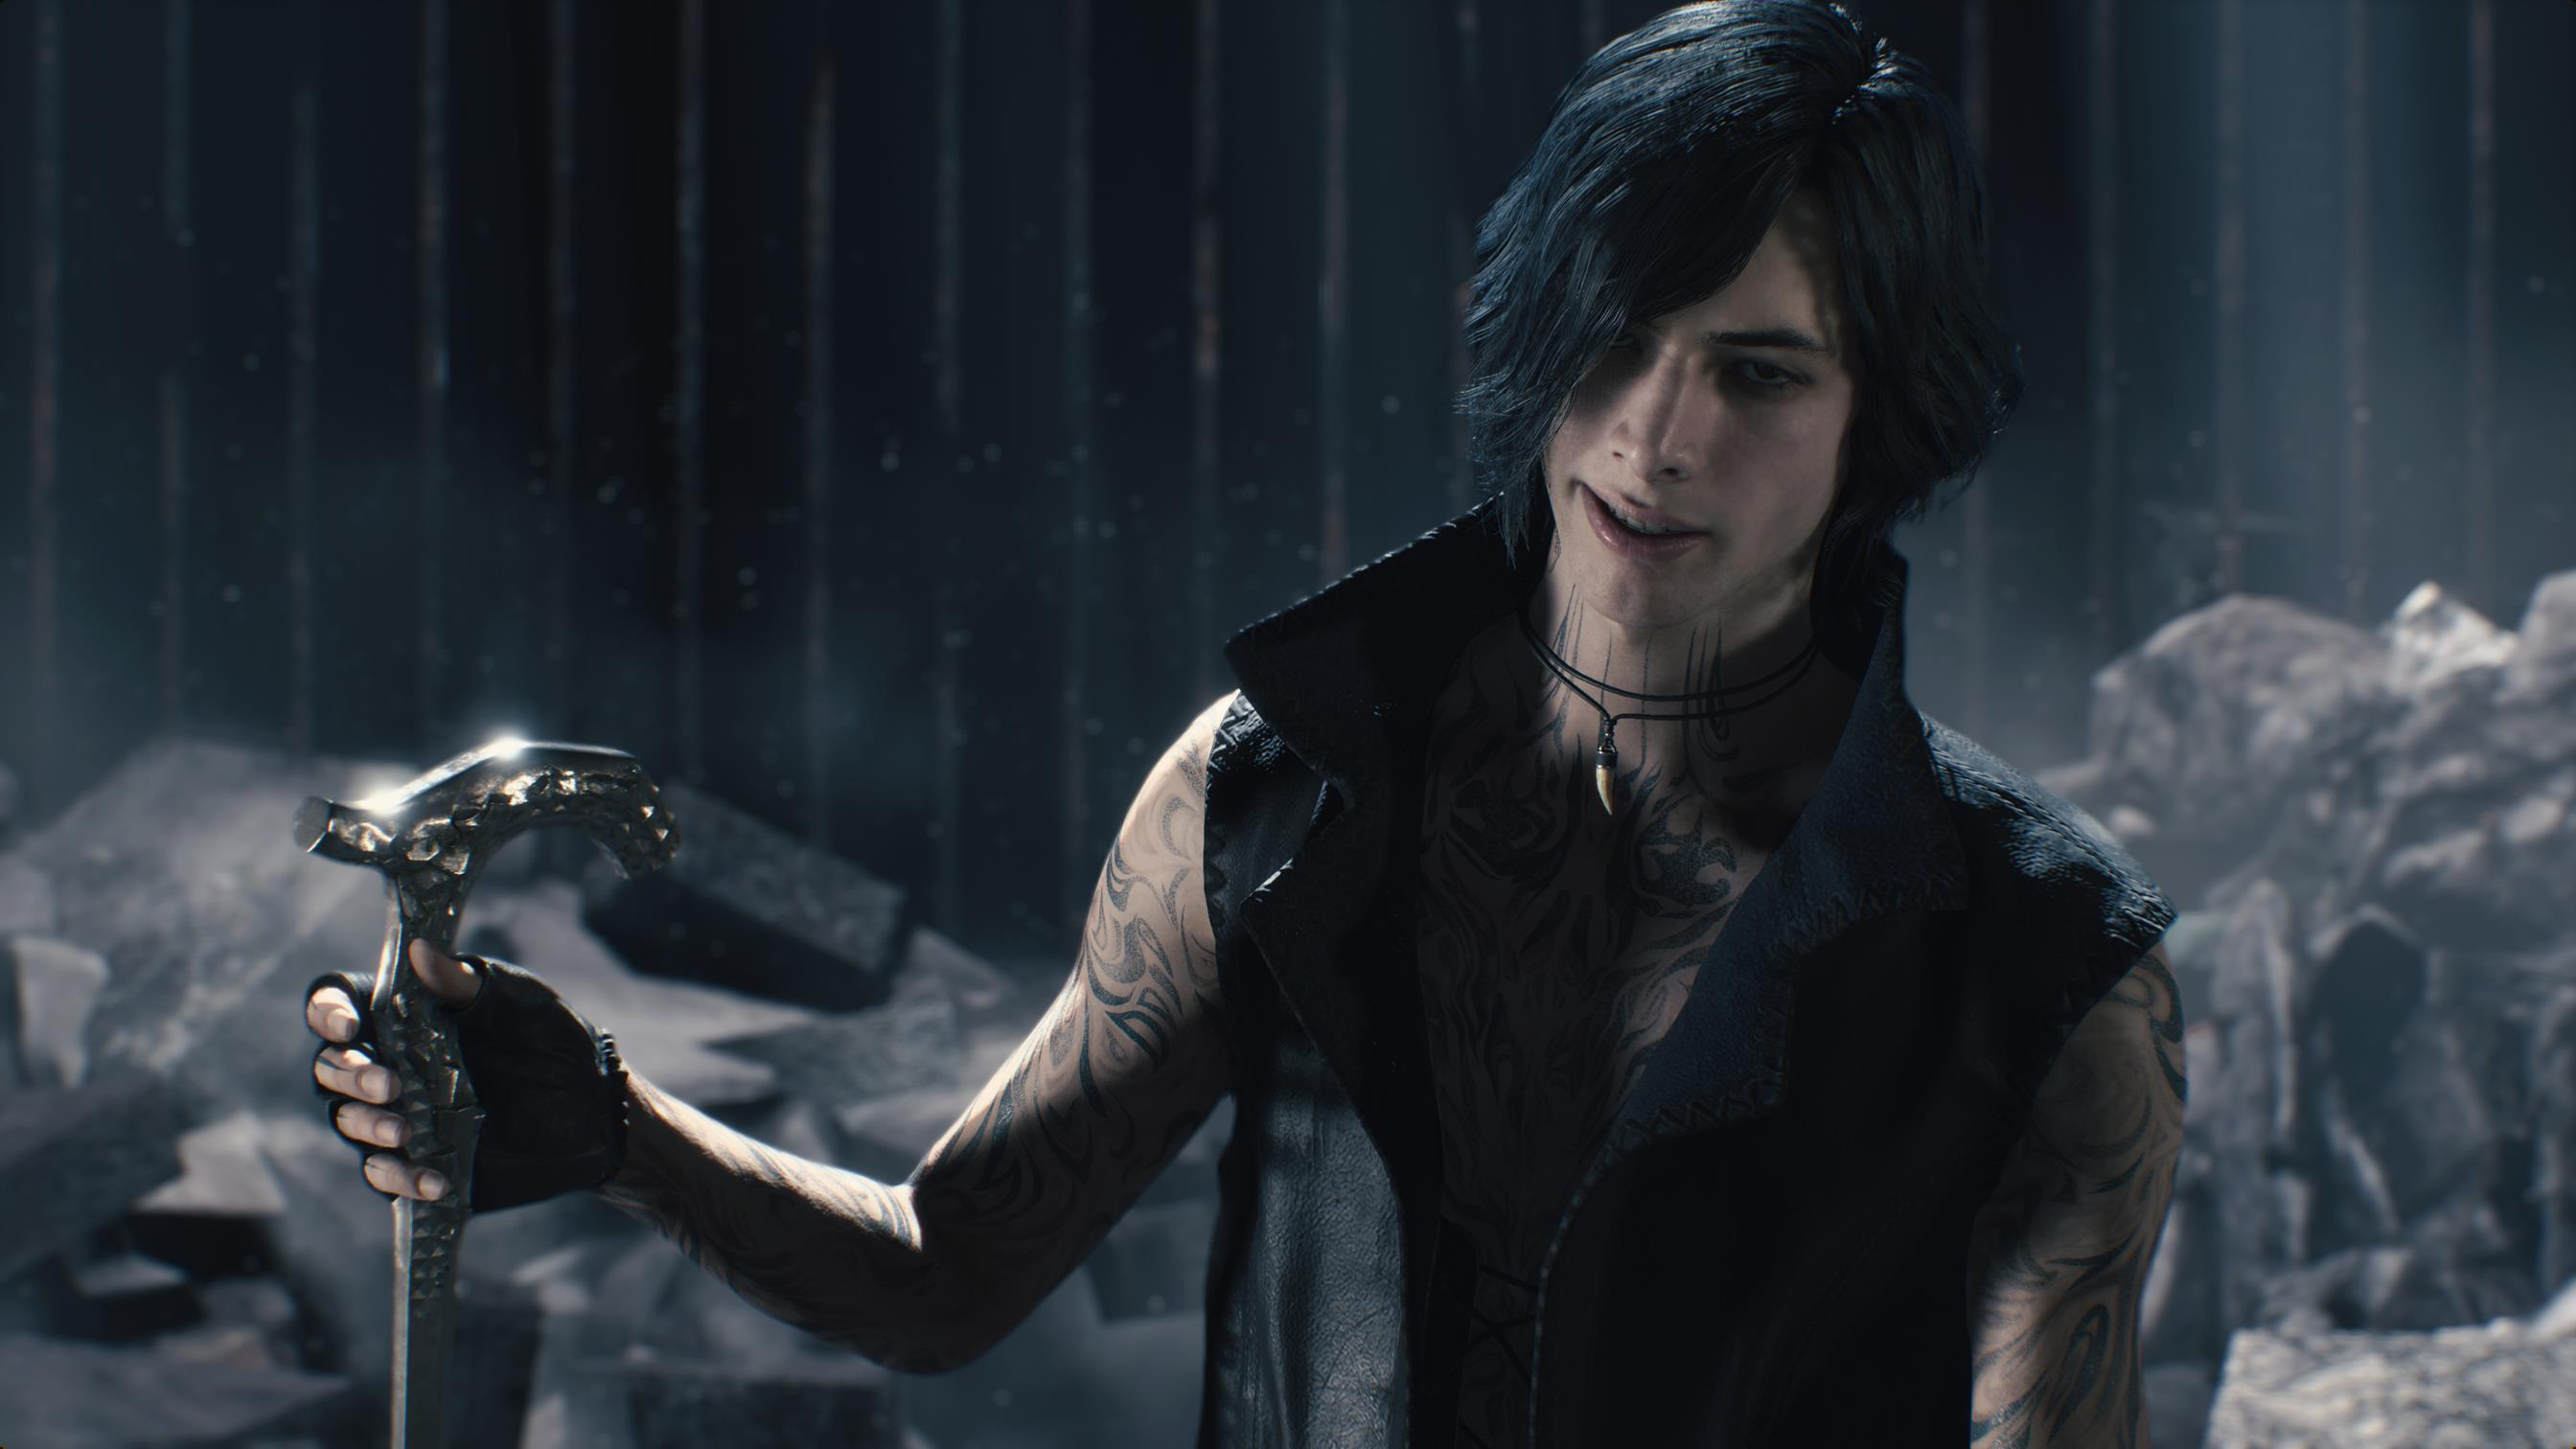 TGS 2018: Dante Looks Badass in Latest Devil May Cry 5 Trailer